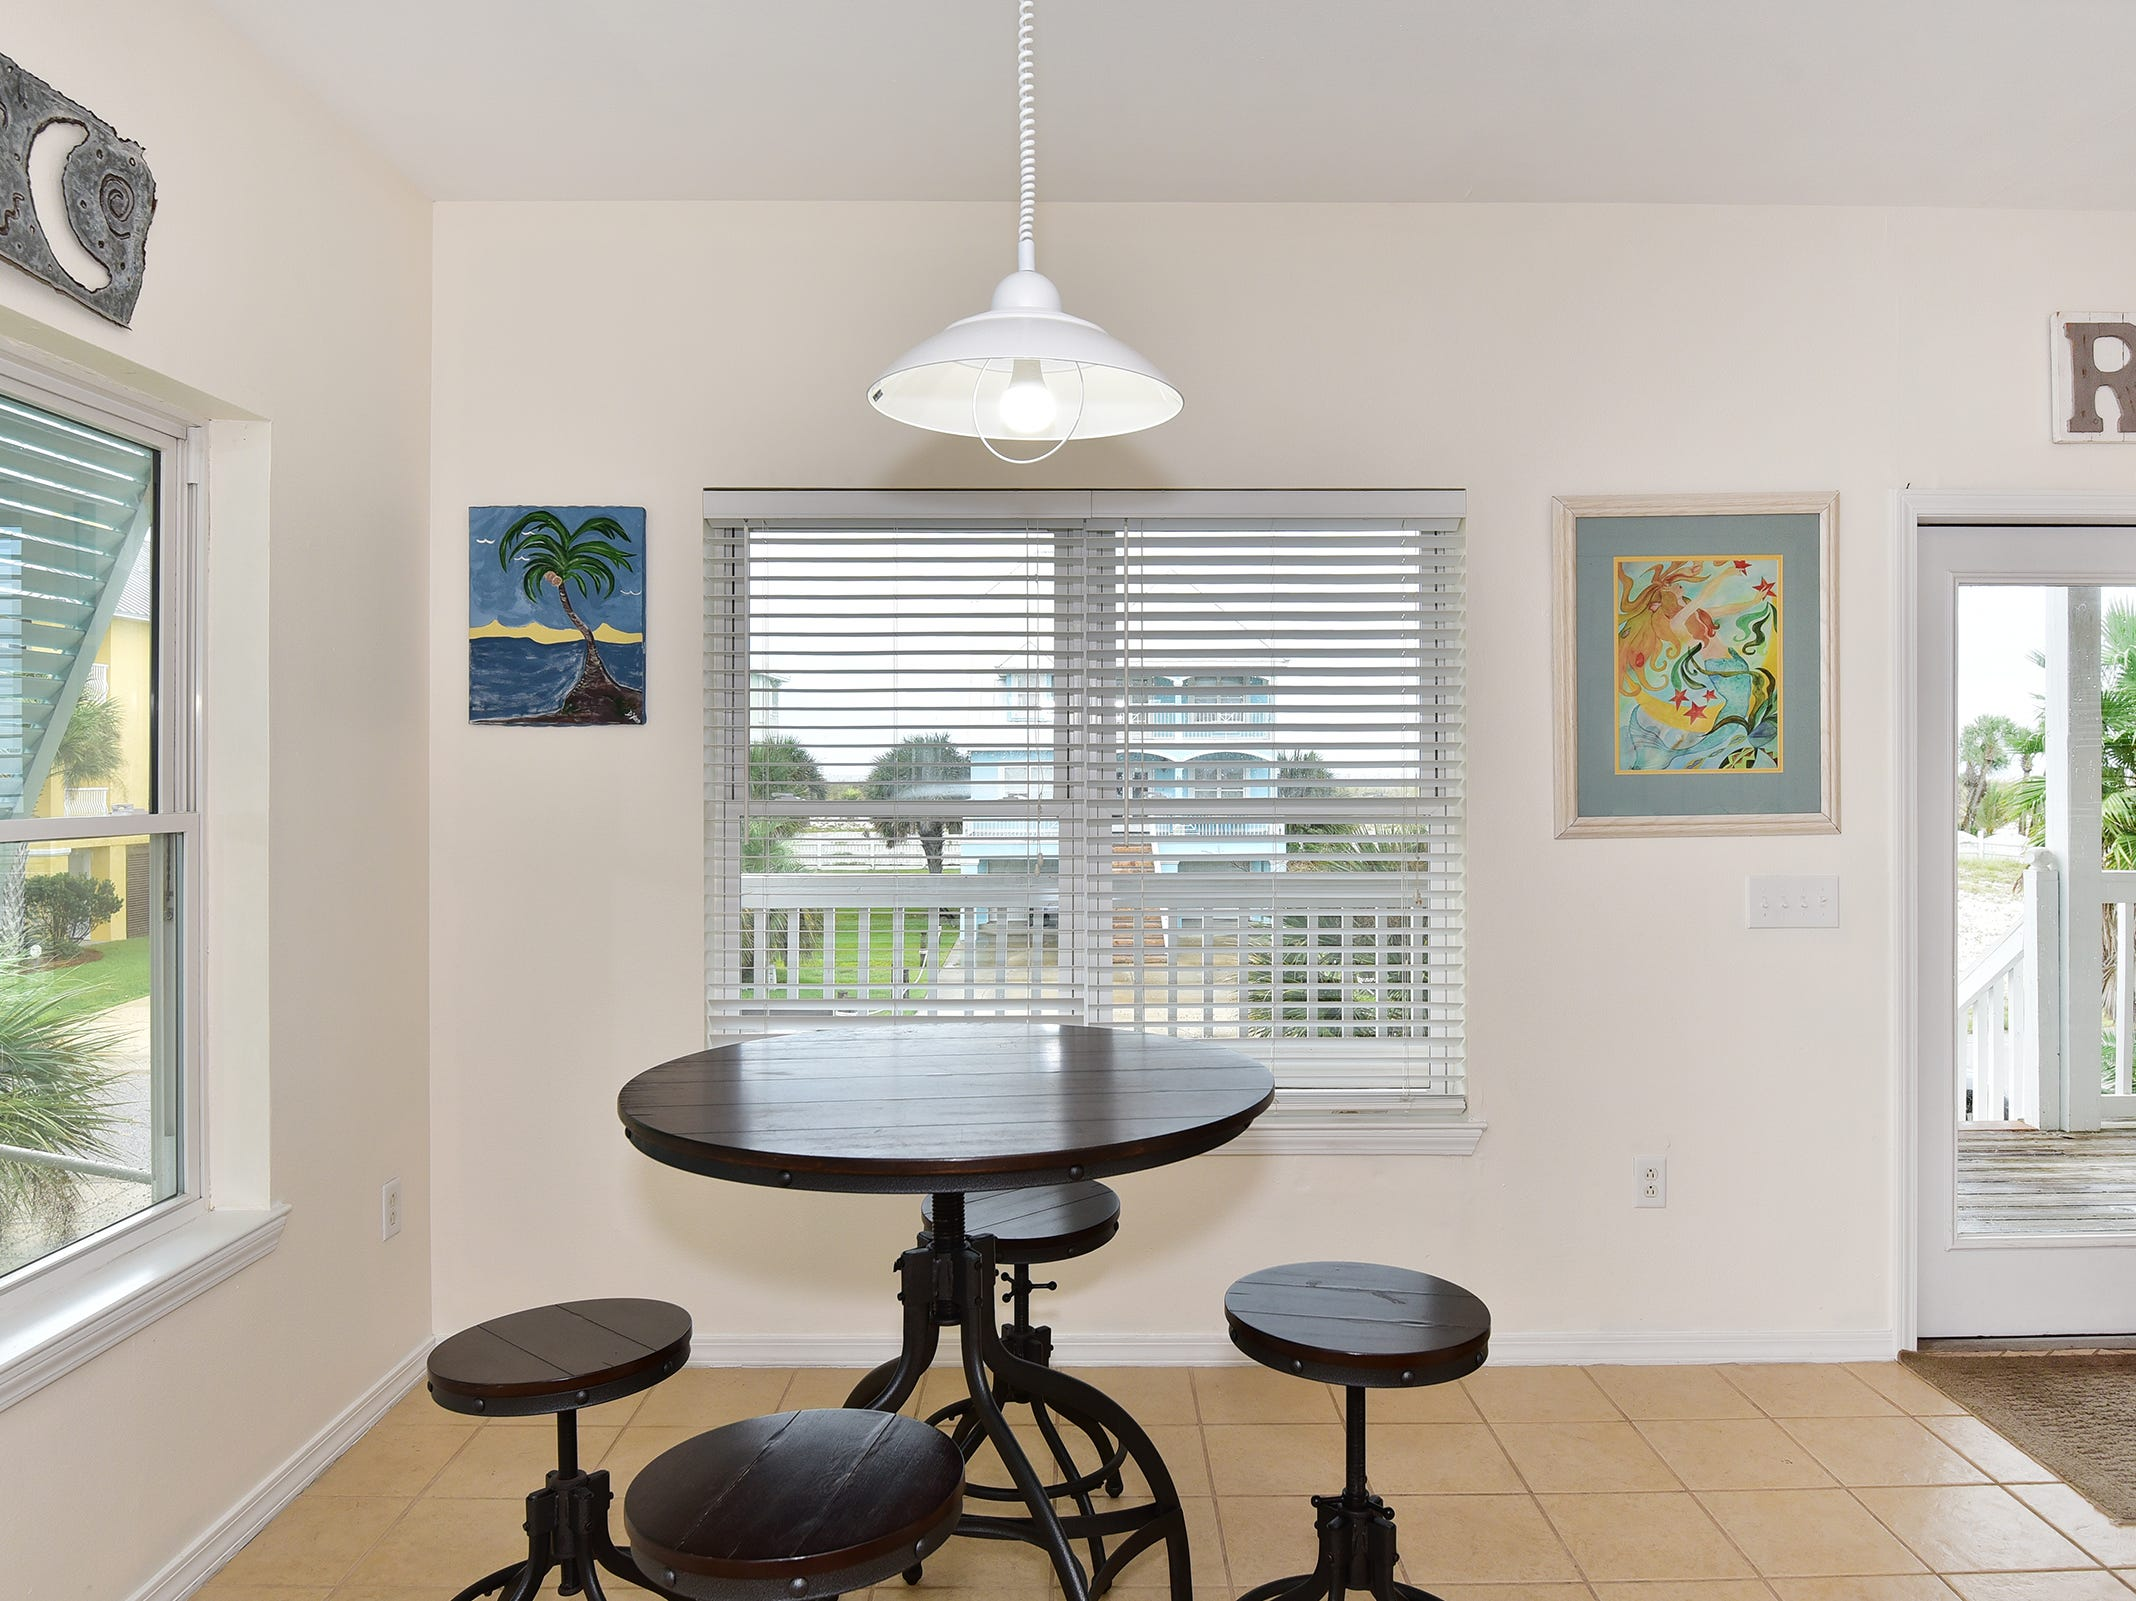 14 Ensenada MarbellaThe breakfast nook is perfect for casual meals.